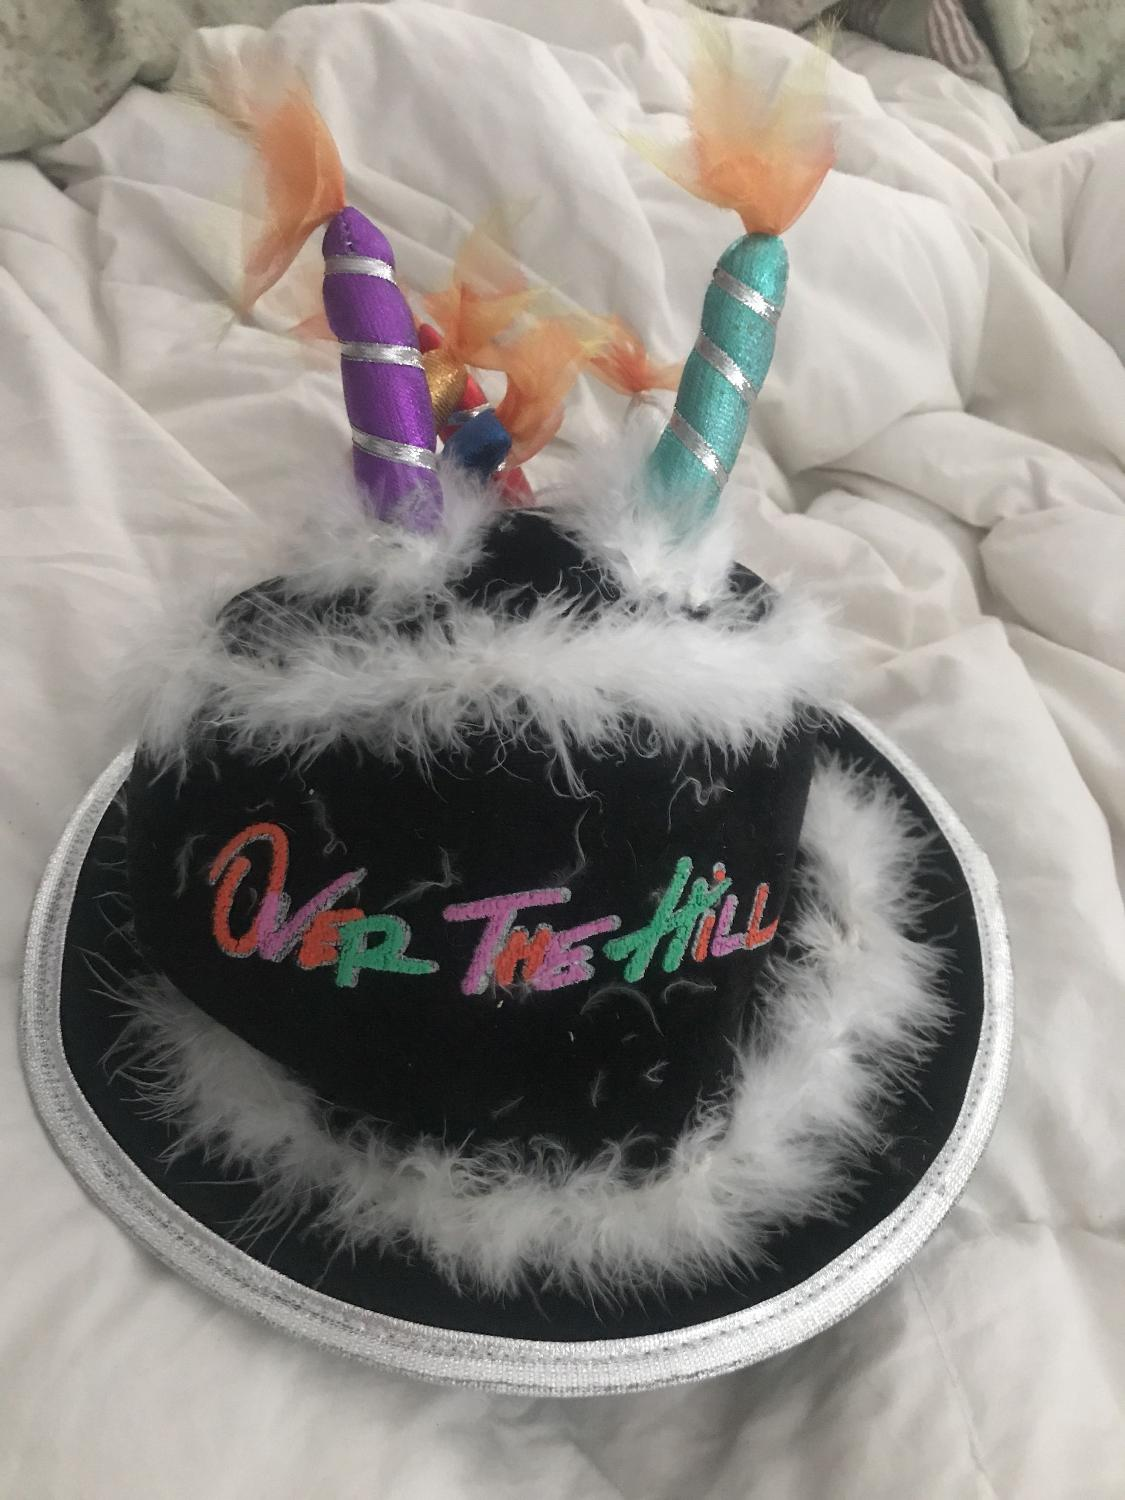 Best Over The Hill Birthday Hat With Candles For Sale In Victoria British Columbia 2019